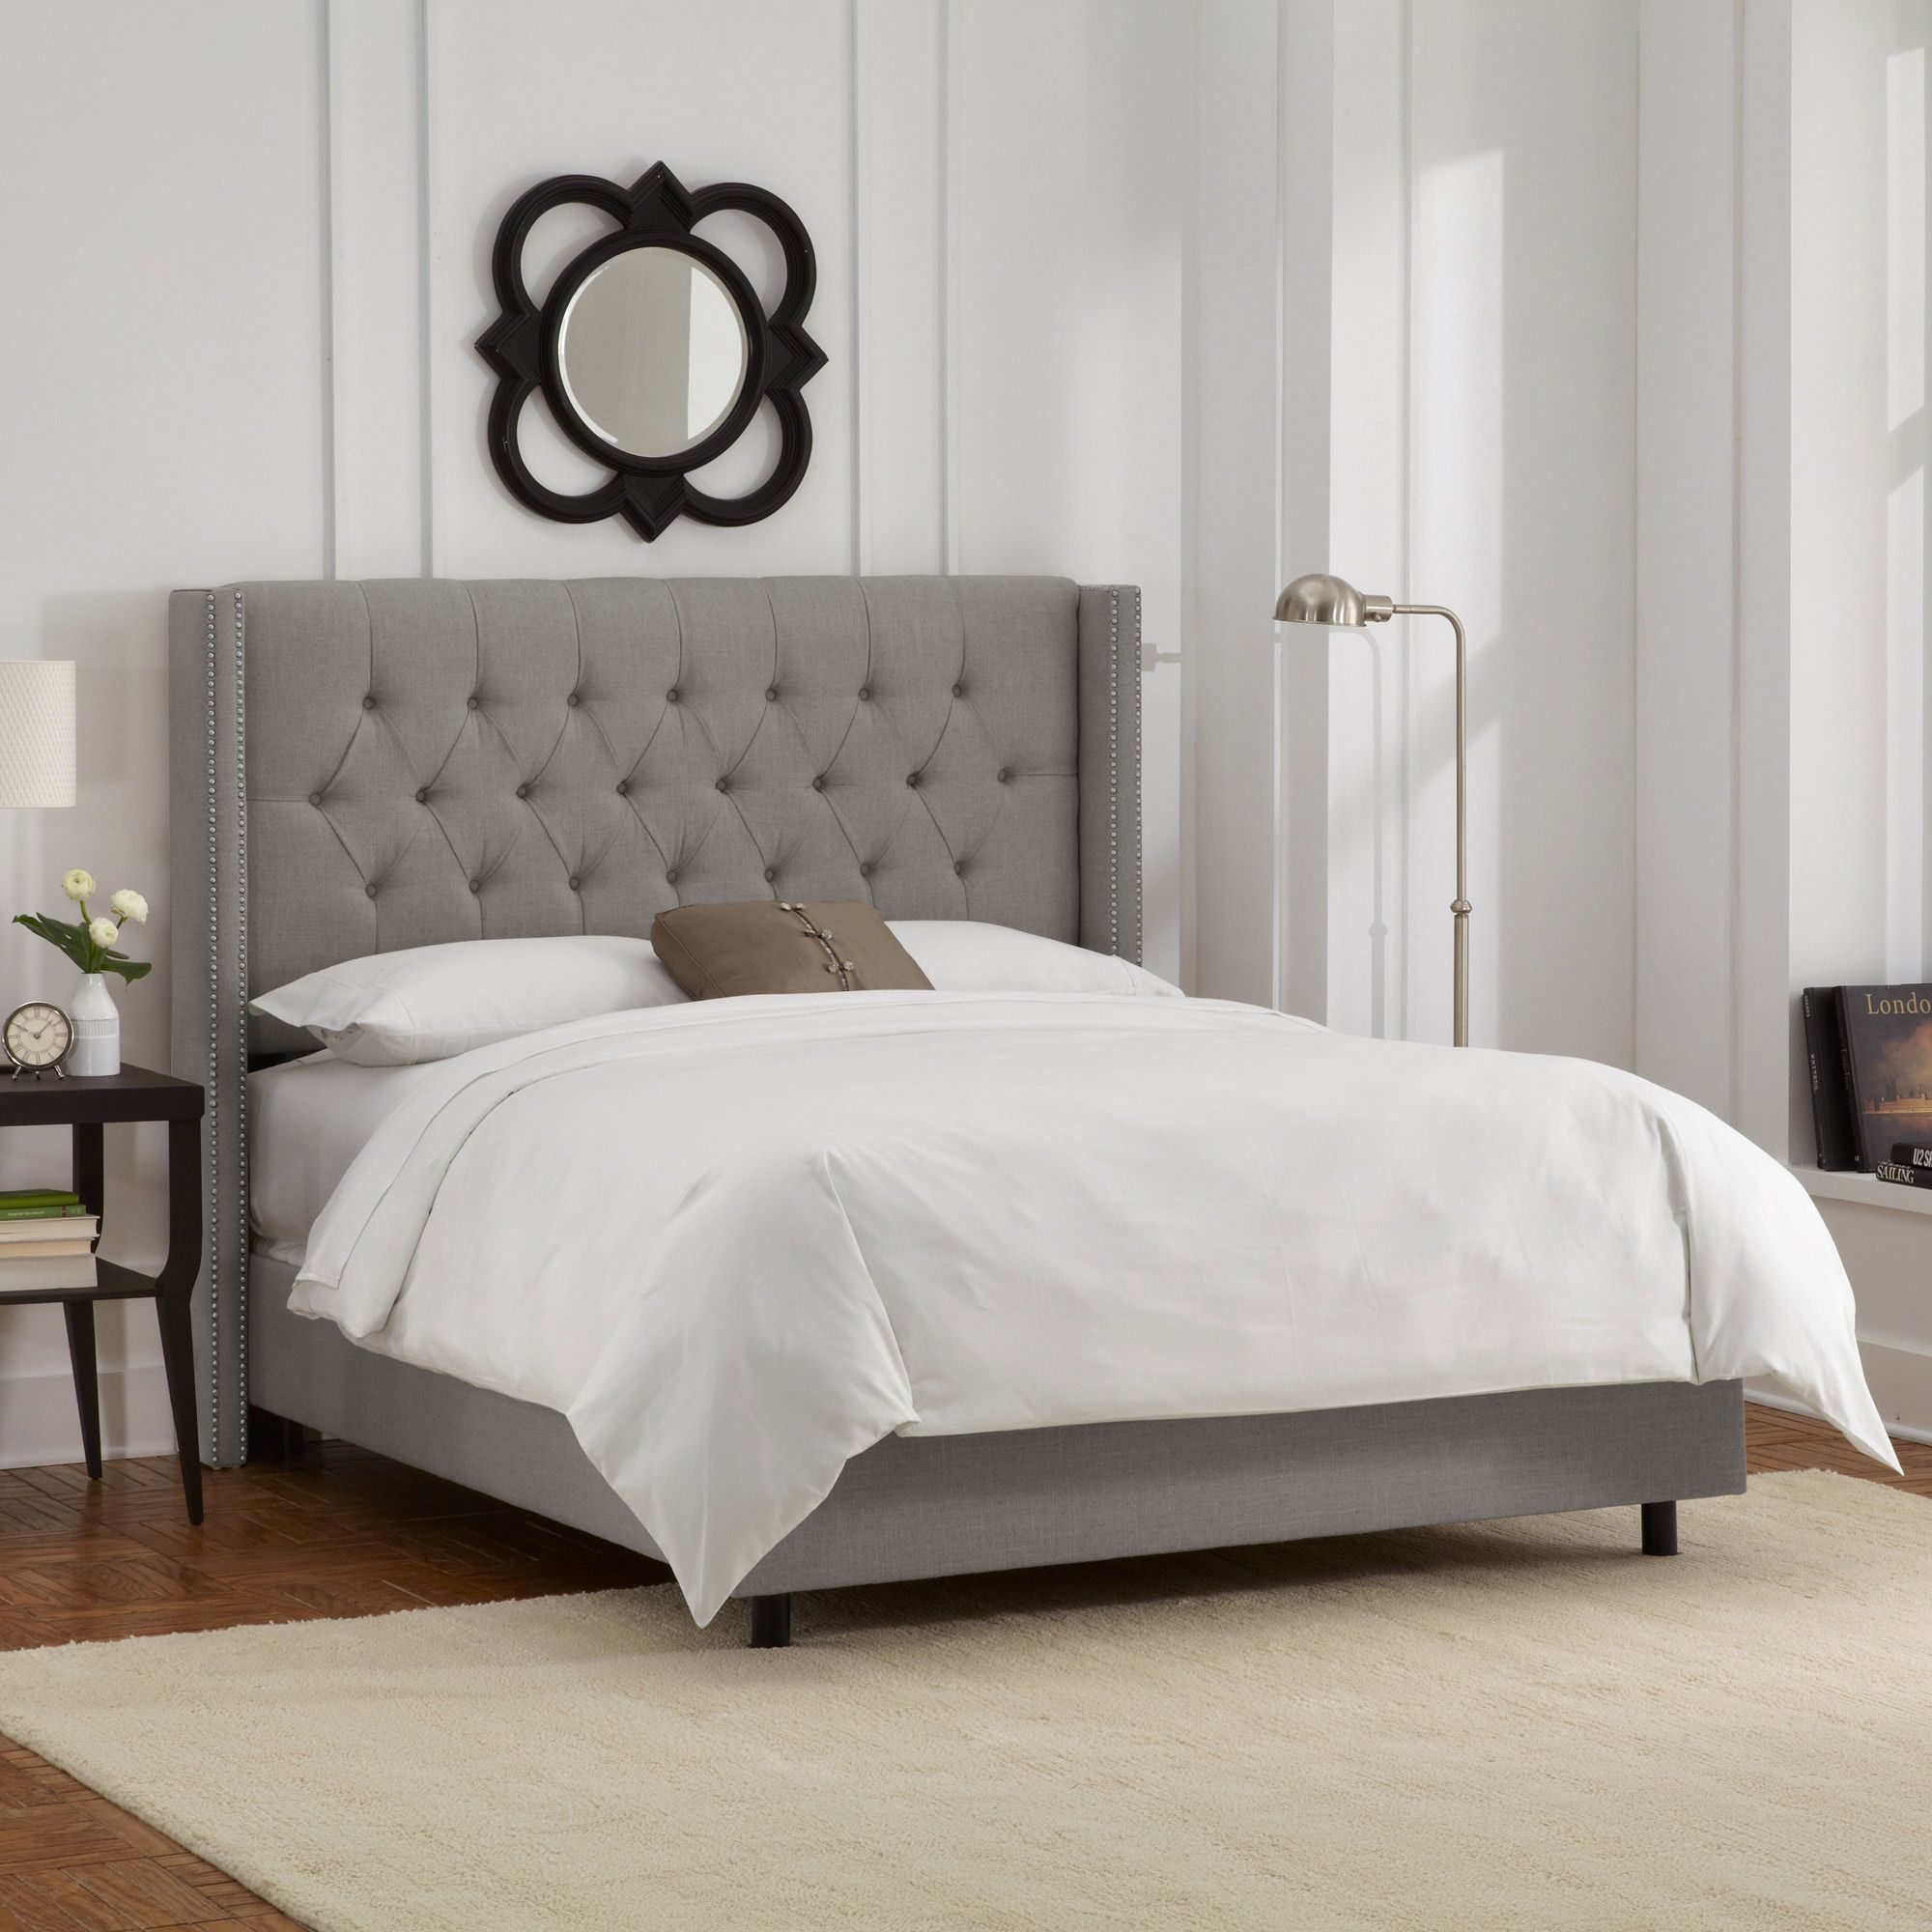 skyline furniture  linens tufted headboards and wood furniture - full diamond tufted wingback nail bed in linen gray  skyline furniture home gallery stores